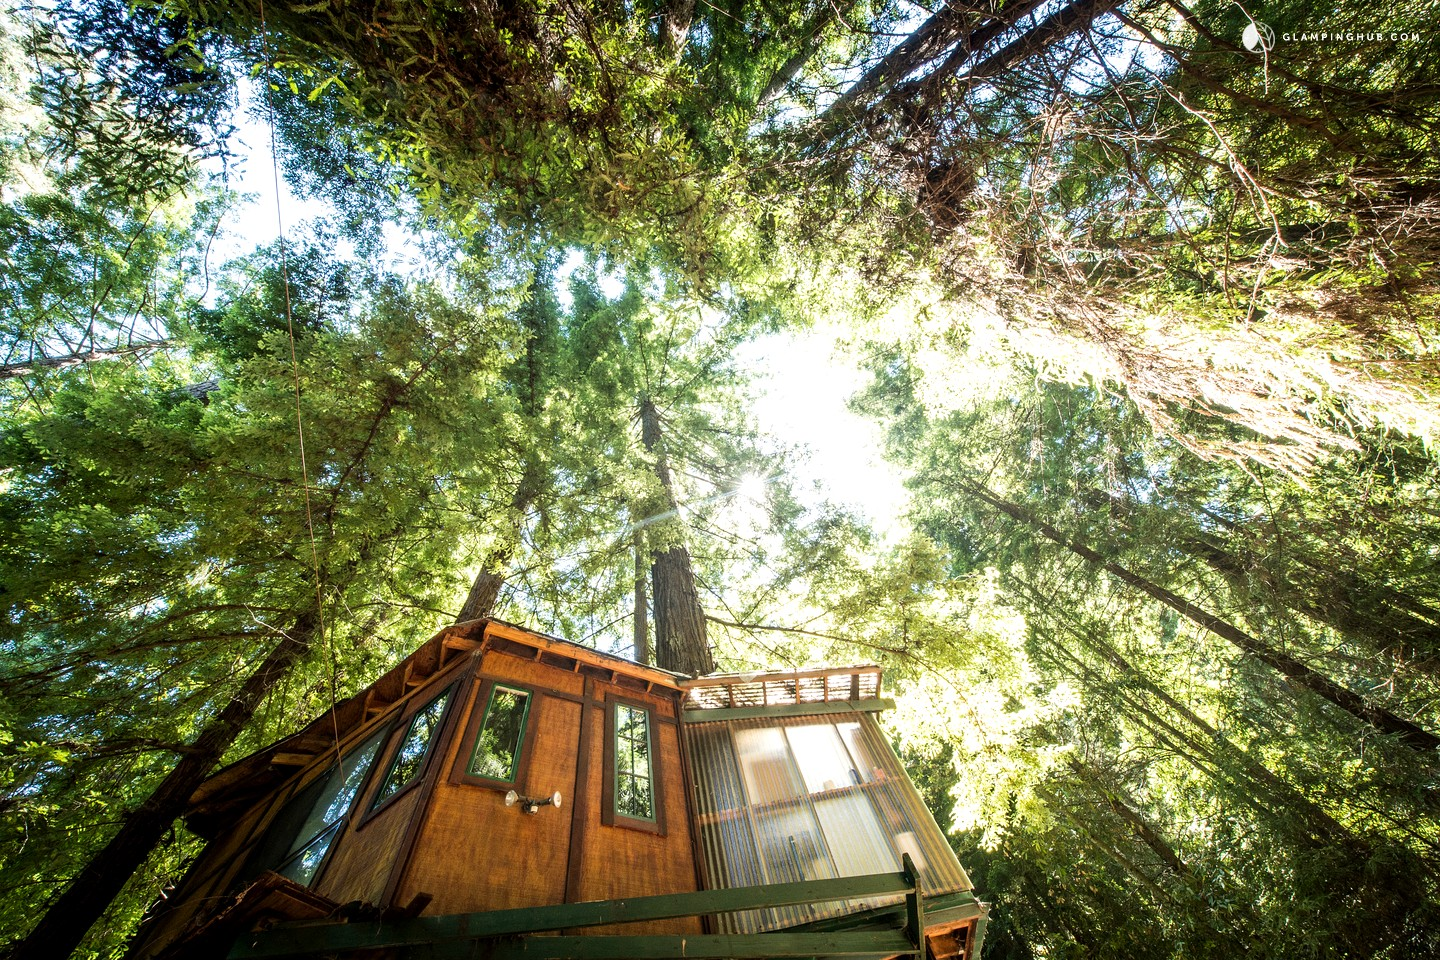 Glamping Tree House In Santa Cruz Mountains Near Monterey